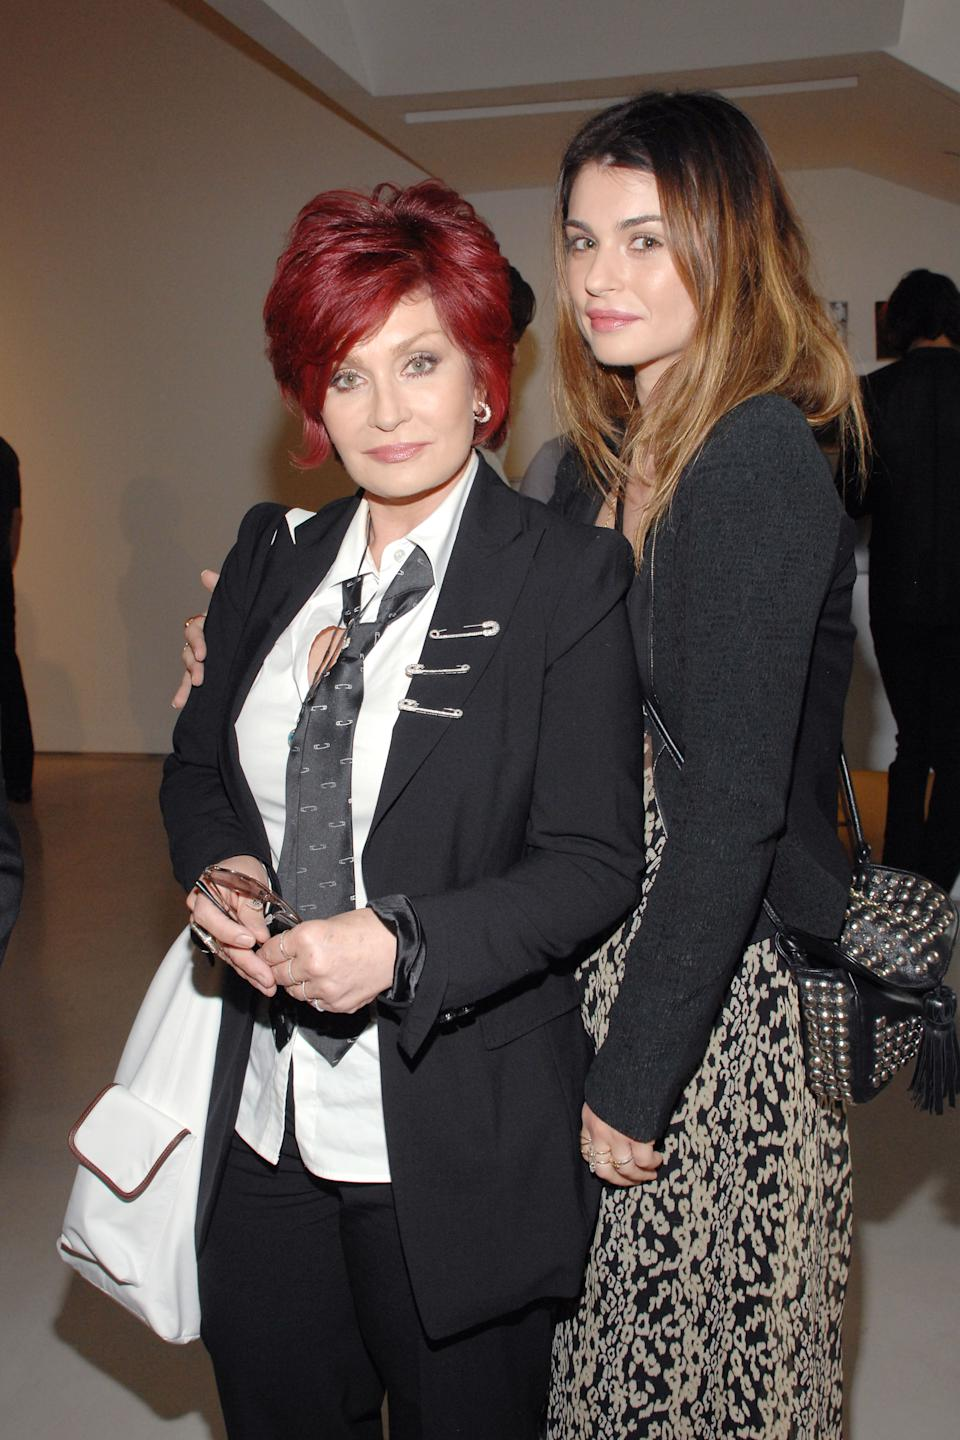 WEST HOLLYWOOD, CA - JUNE 4: Sharon Osbourne and Aimee Osbourne attend PRISM : Andy Warhol Black & White at PRISM GALLERY on June 4, 2010 in West Hollywood, California. (Photo by ANDREAS BRANCH/Patrick McMullan via Getty Images)